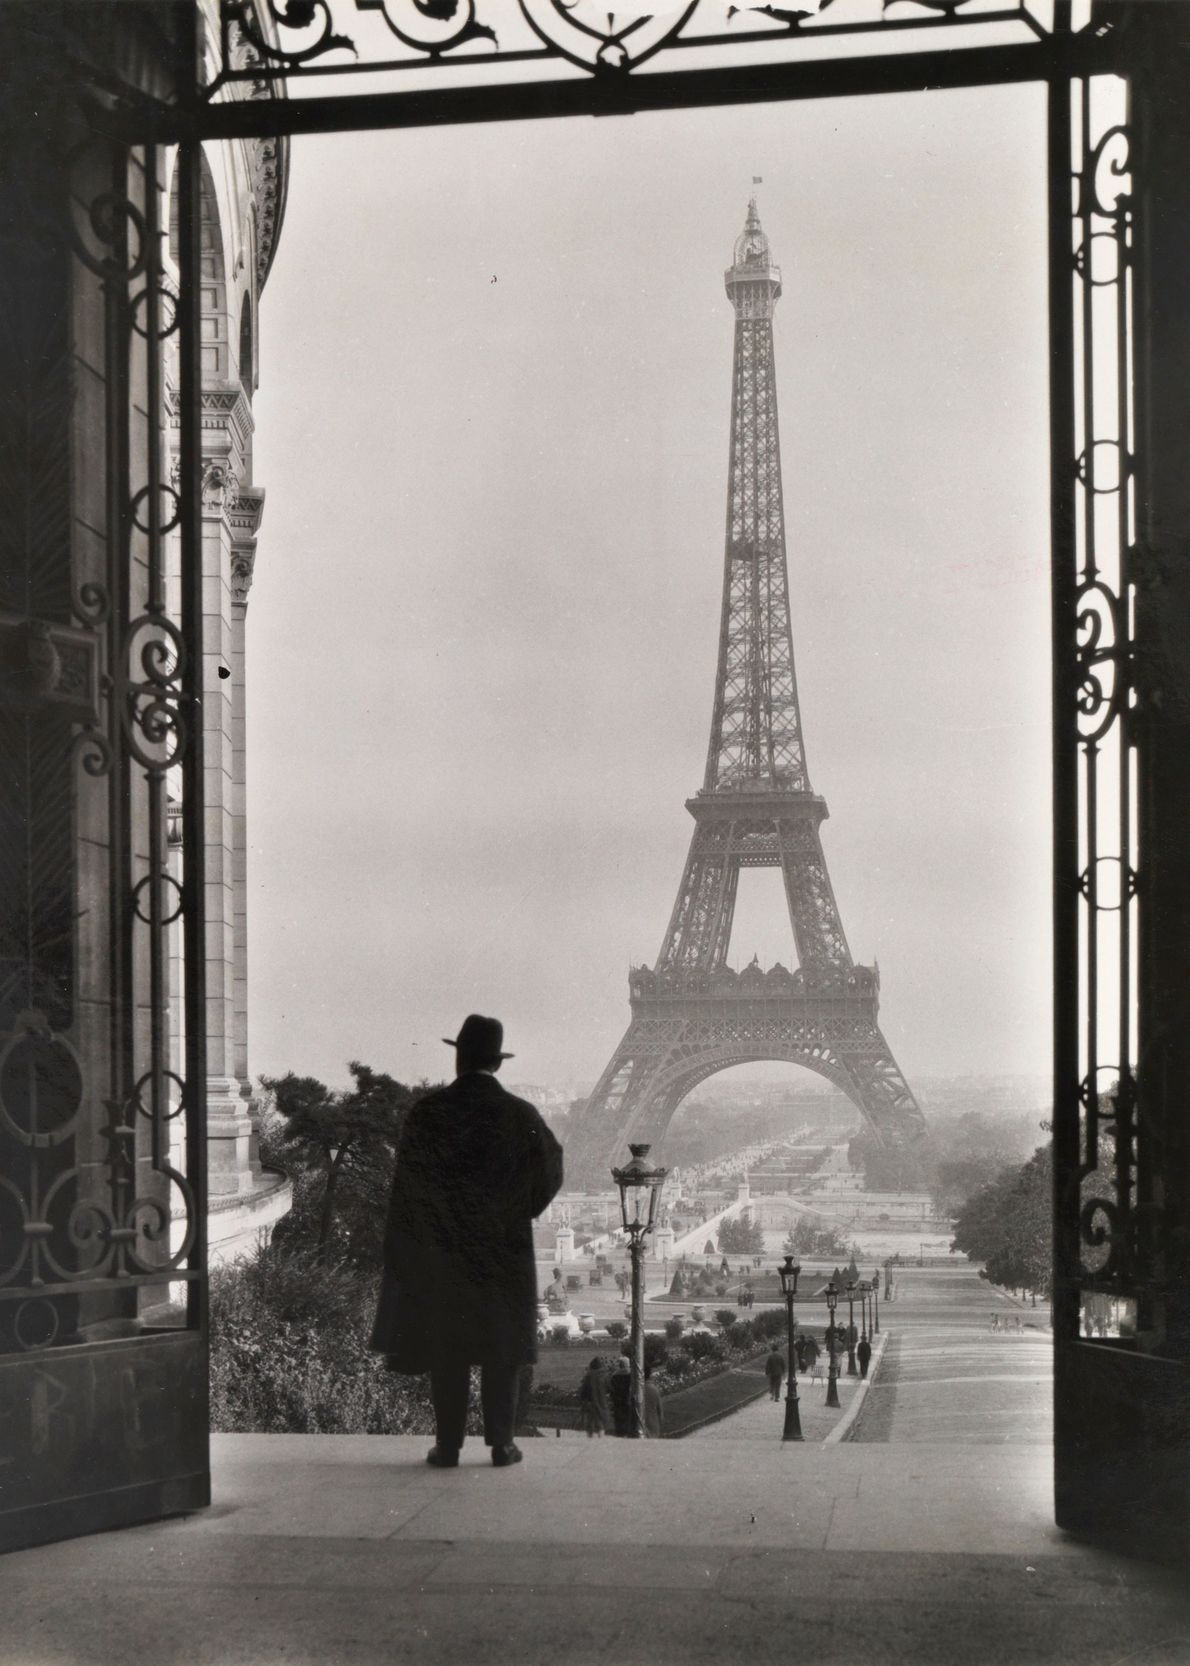 Forty years after completion of the Eiffel Tower, a man soaks in the iconic view.